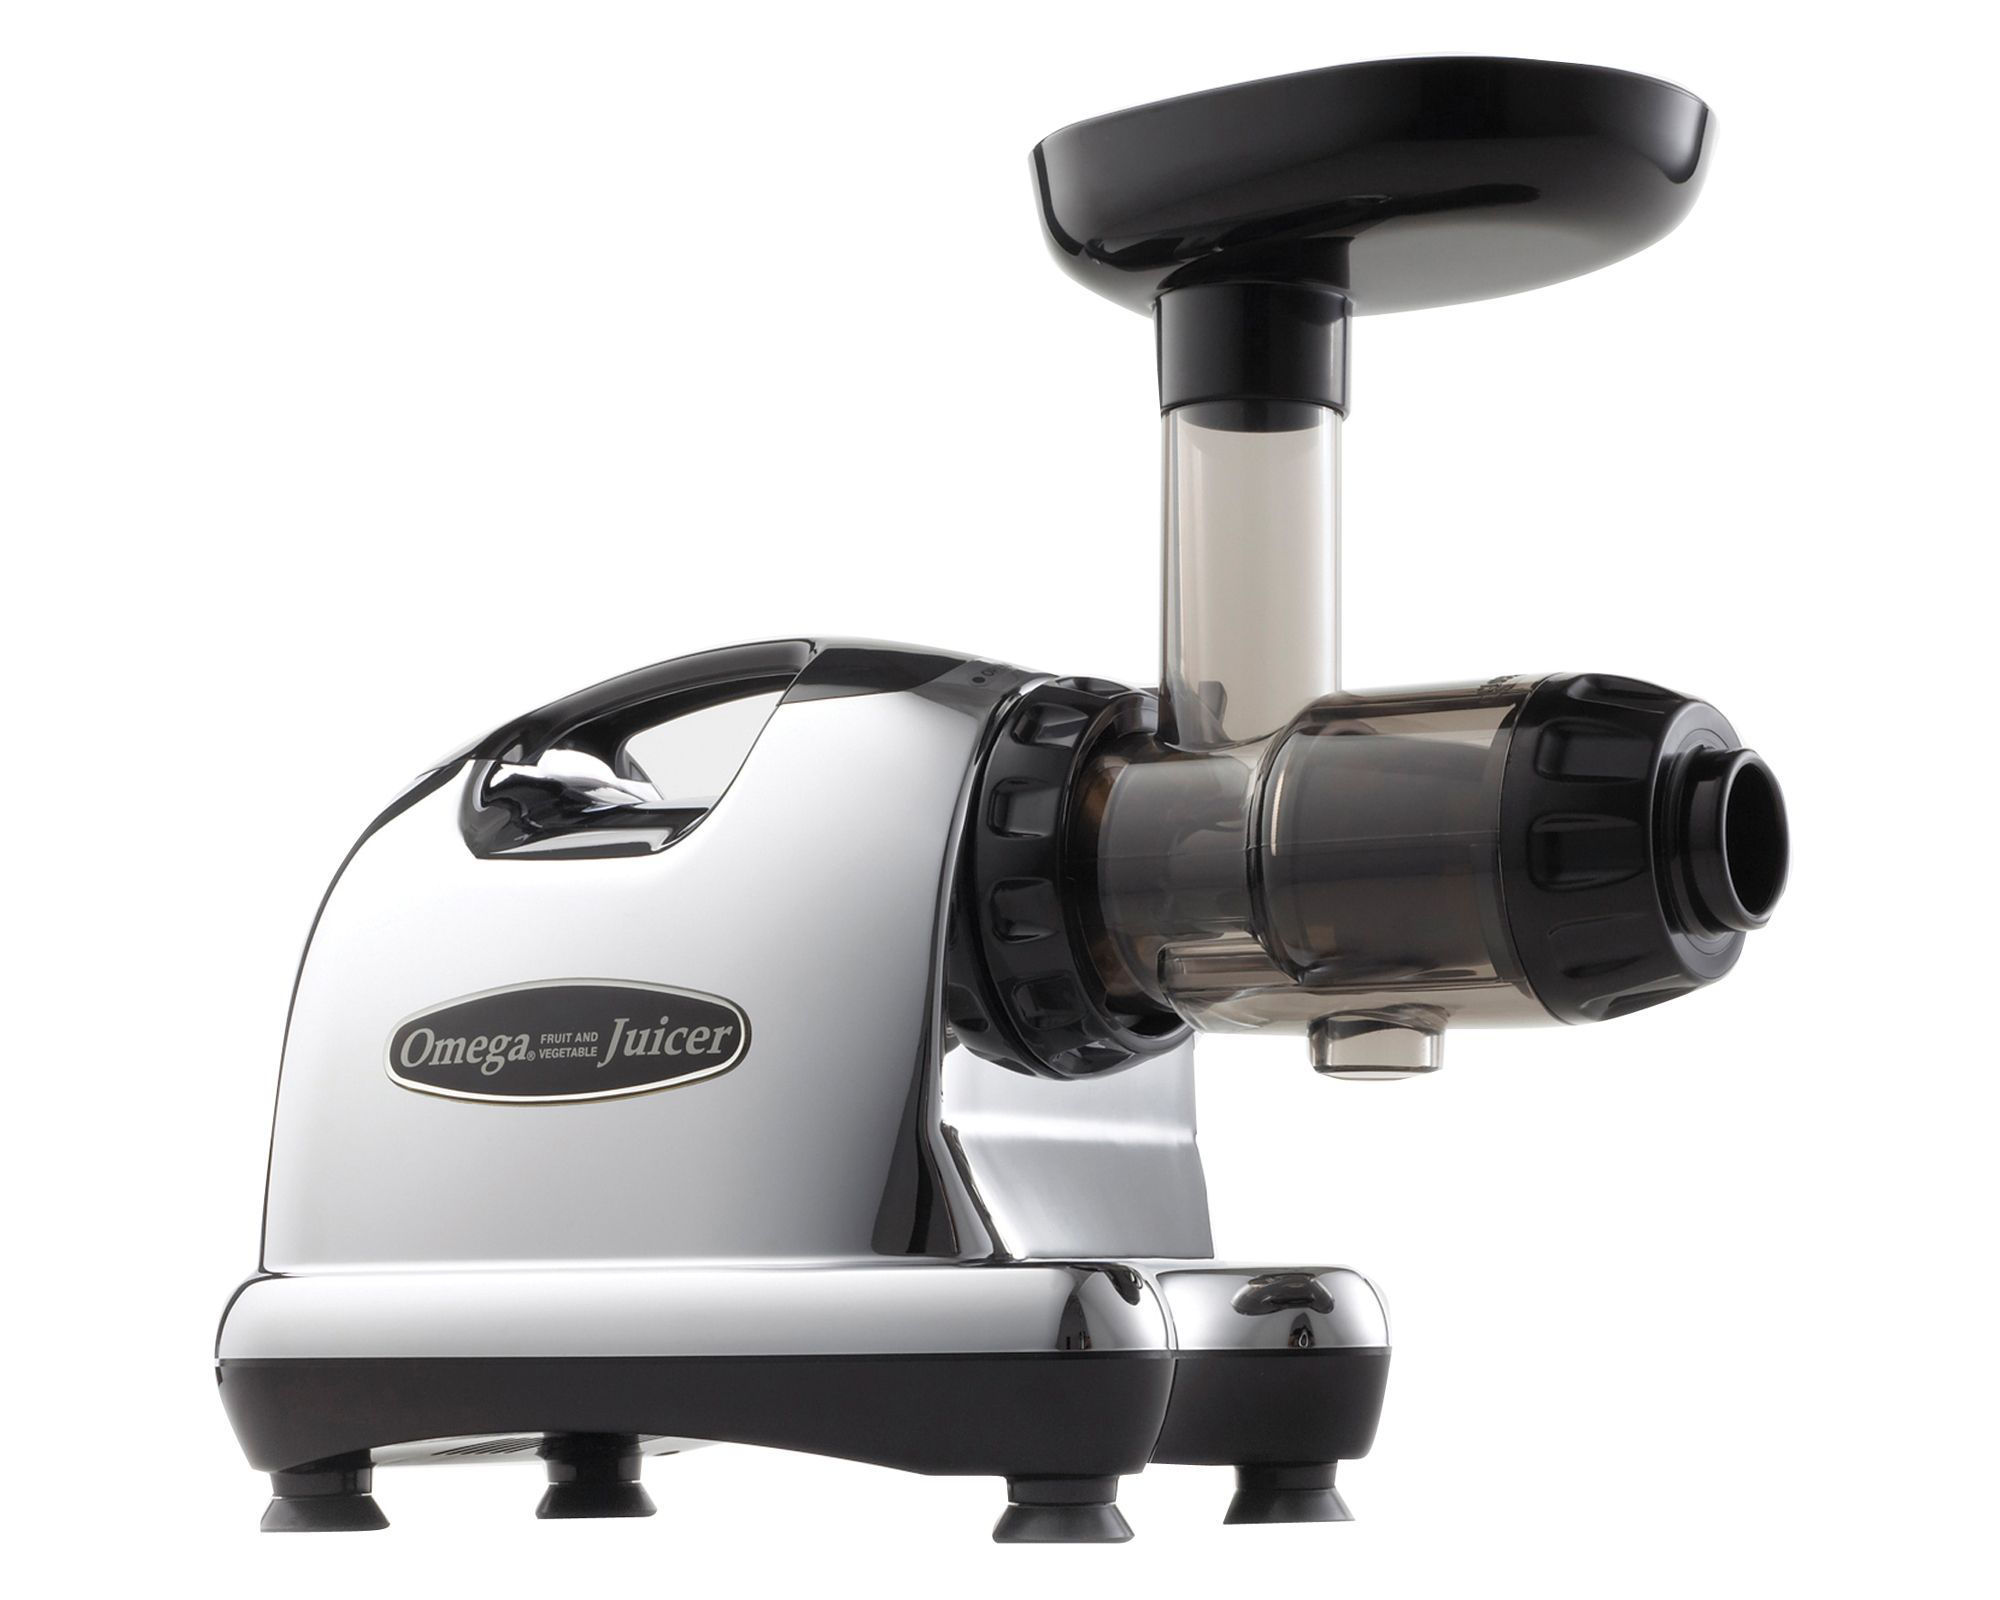 See Why Masticating Juicers Outperform Centrifugal Juicers In Every Category But One